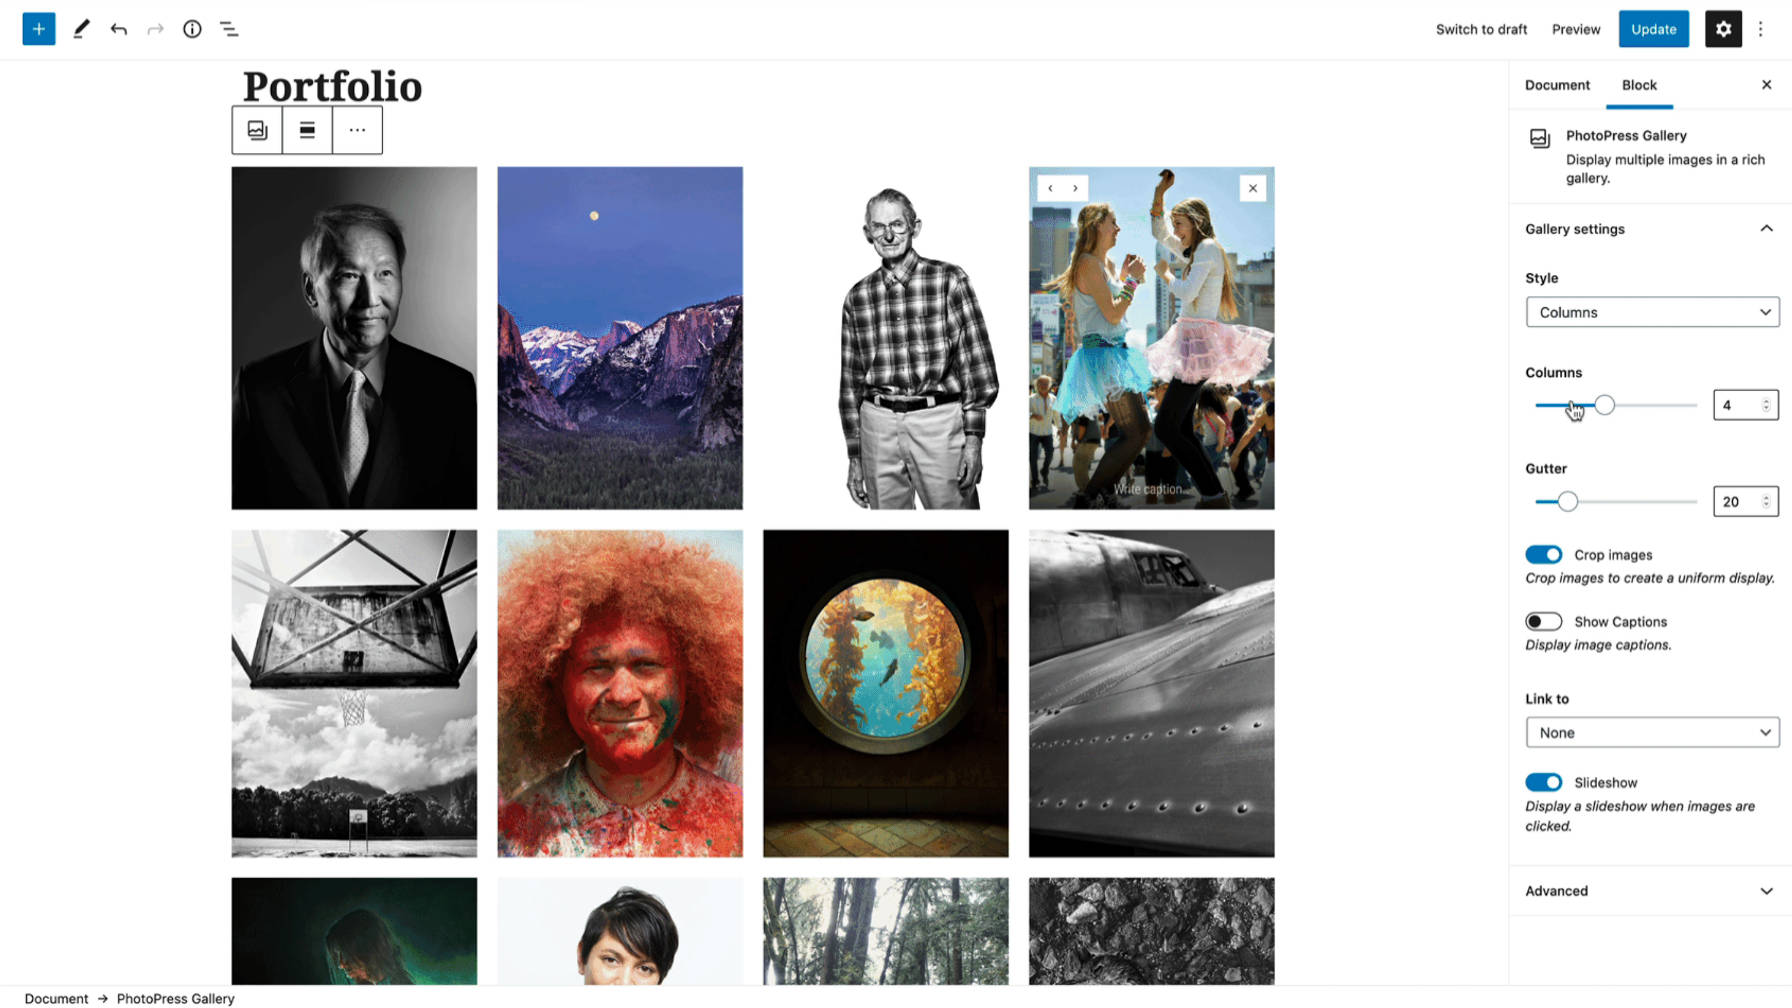 PhotoPress Gallery block in the WordPress editor.